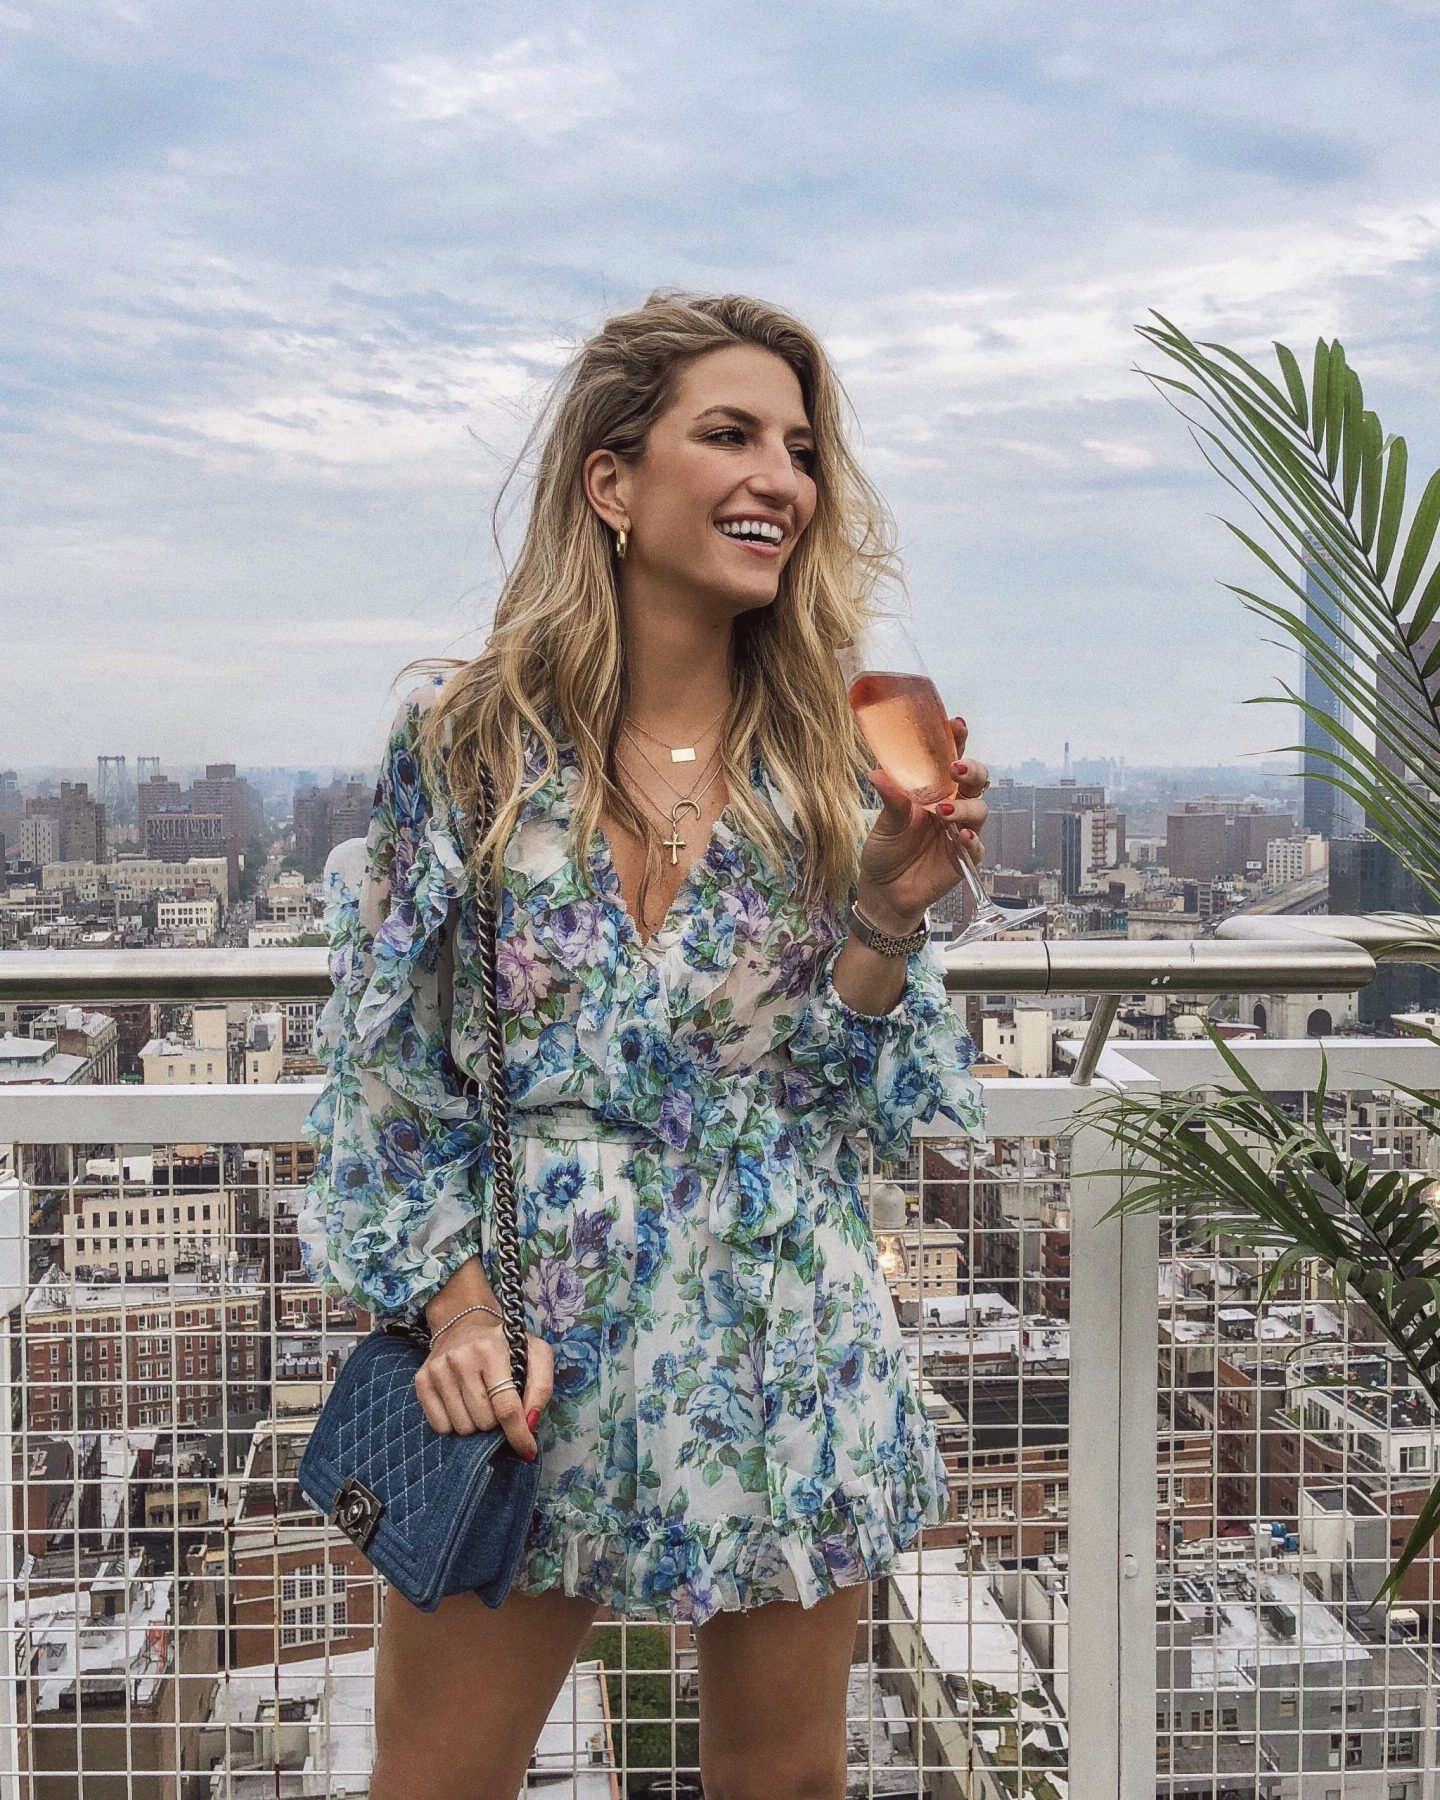 Cassandra DiMicco, Cass DiMicco, Dressed For Dreams, NYC, New York City, New York, Street Style NYC, Street Style 2018, NYC Street Style Street Style Outfits, 2018 Trends, NYC Fashion Blogger, Zimmermann, floral romper, denim boy bag, layered necklaces